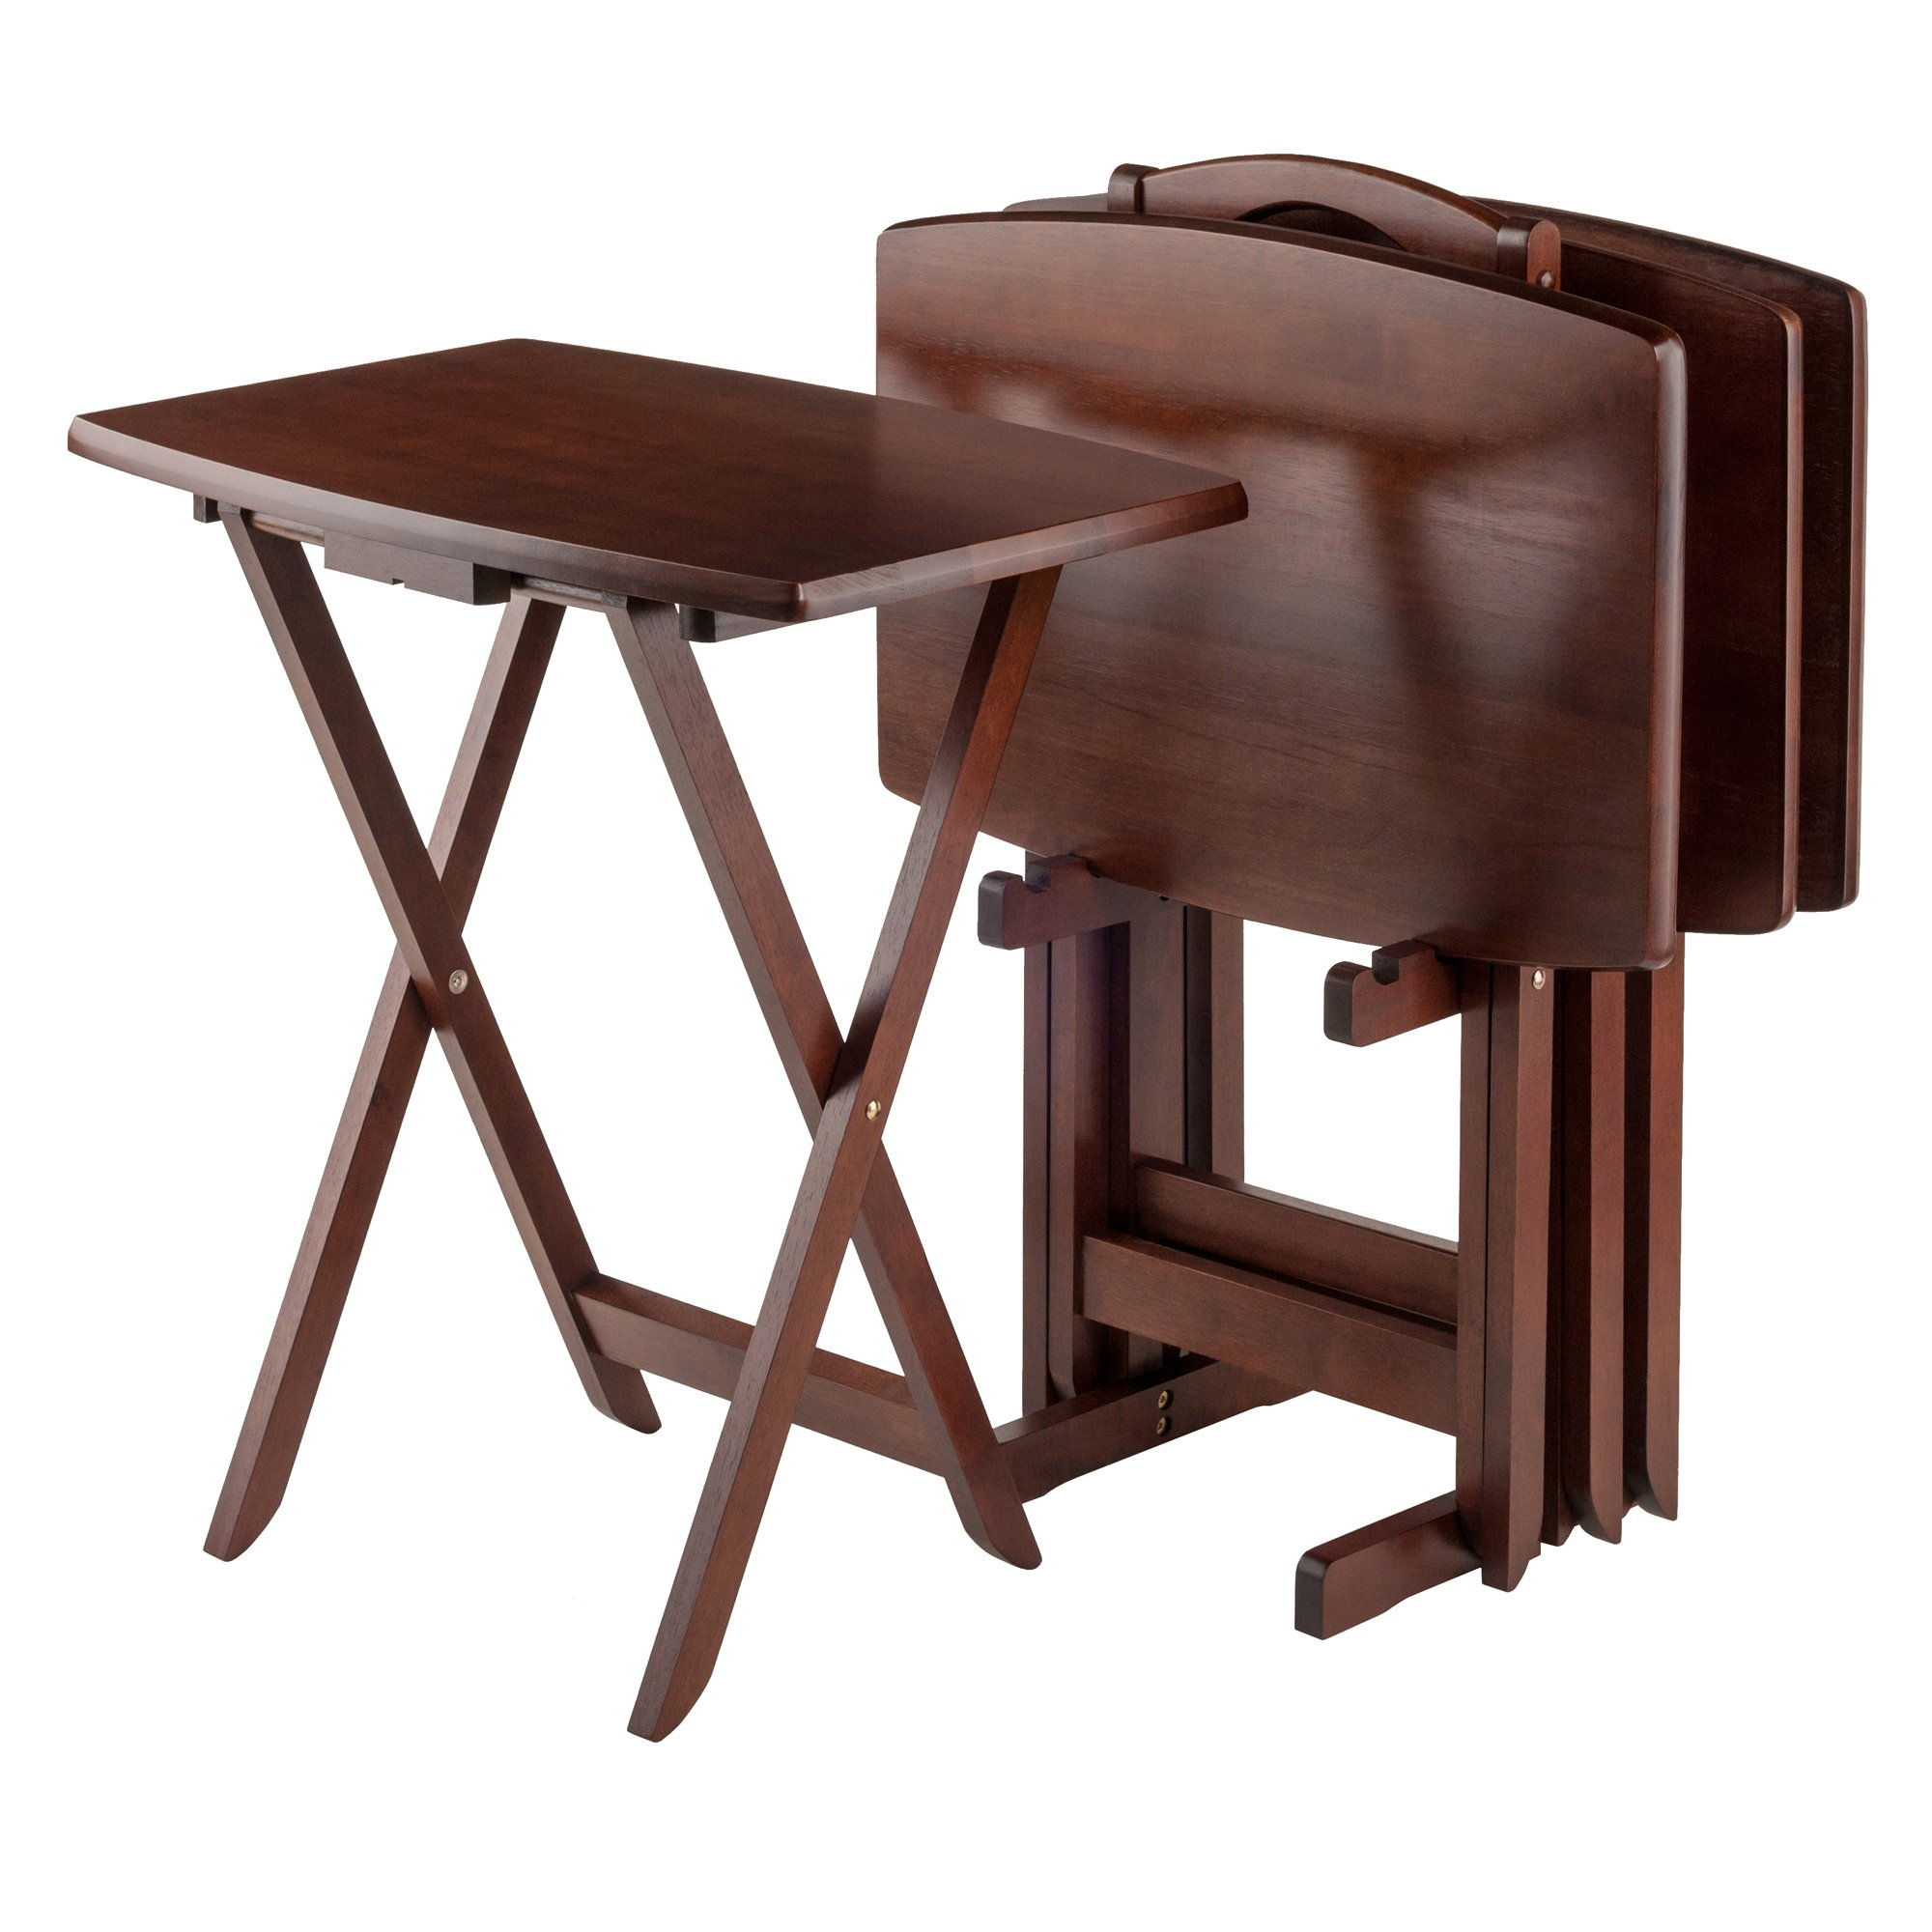 Winsome Oversize Snack Table Set, Walnut by Winsome Wood (Image #1)